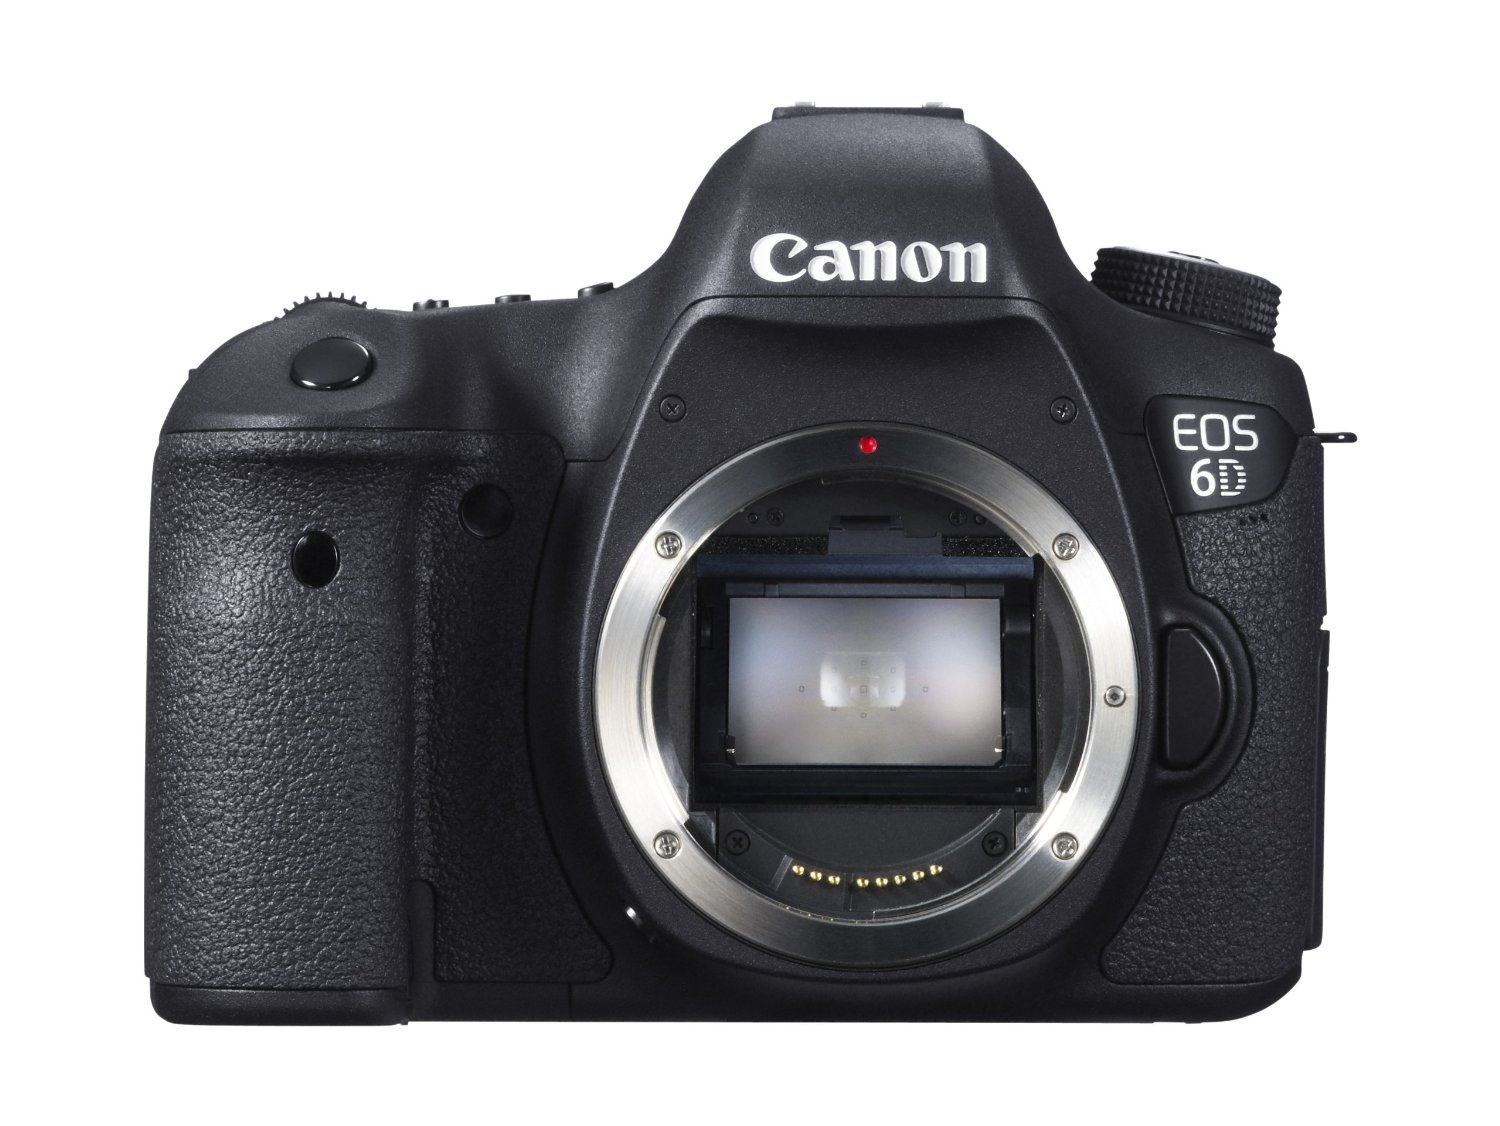 PHOTOGRAPHIC CENTRAL The Canon EOS 6D Review